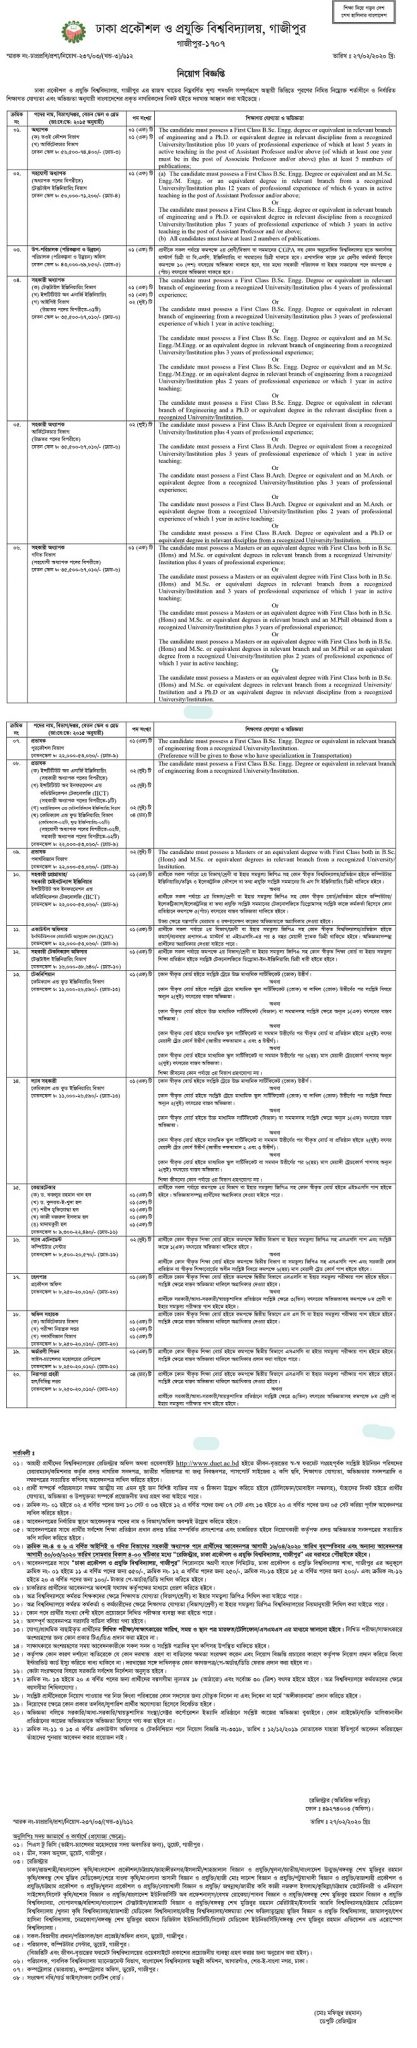 Bangladesh University of Engineering and Technology (BUET) Job Circular 2020